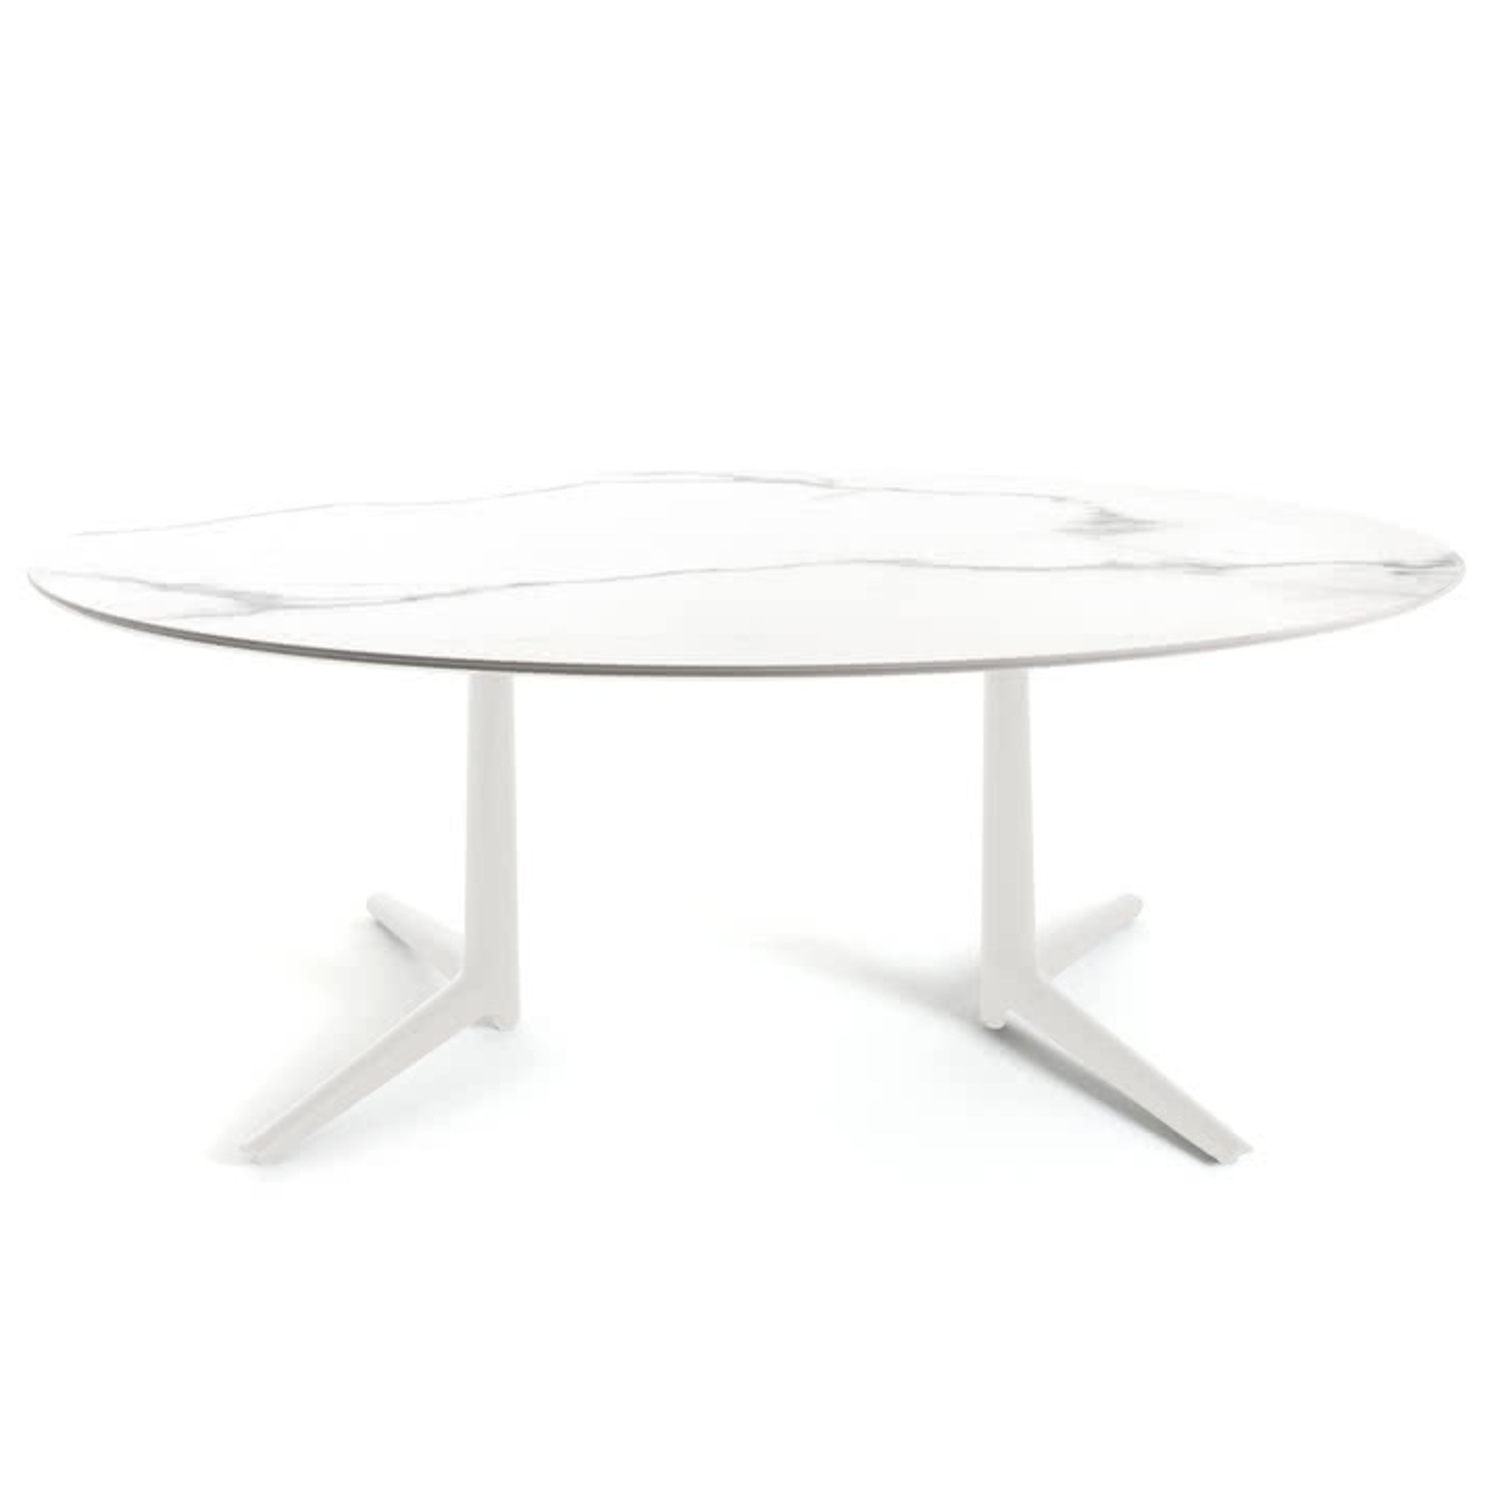 Kartell Oval Carrara Marble Dining Table - image-0